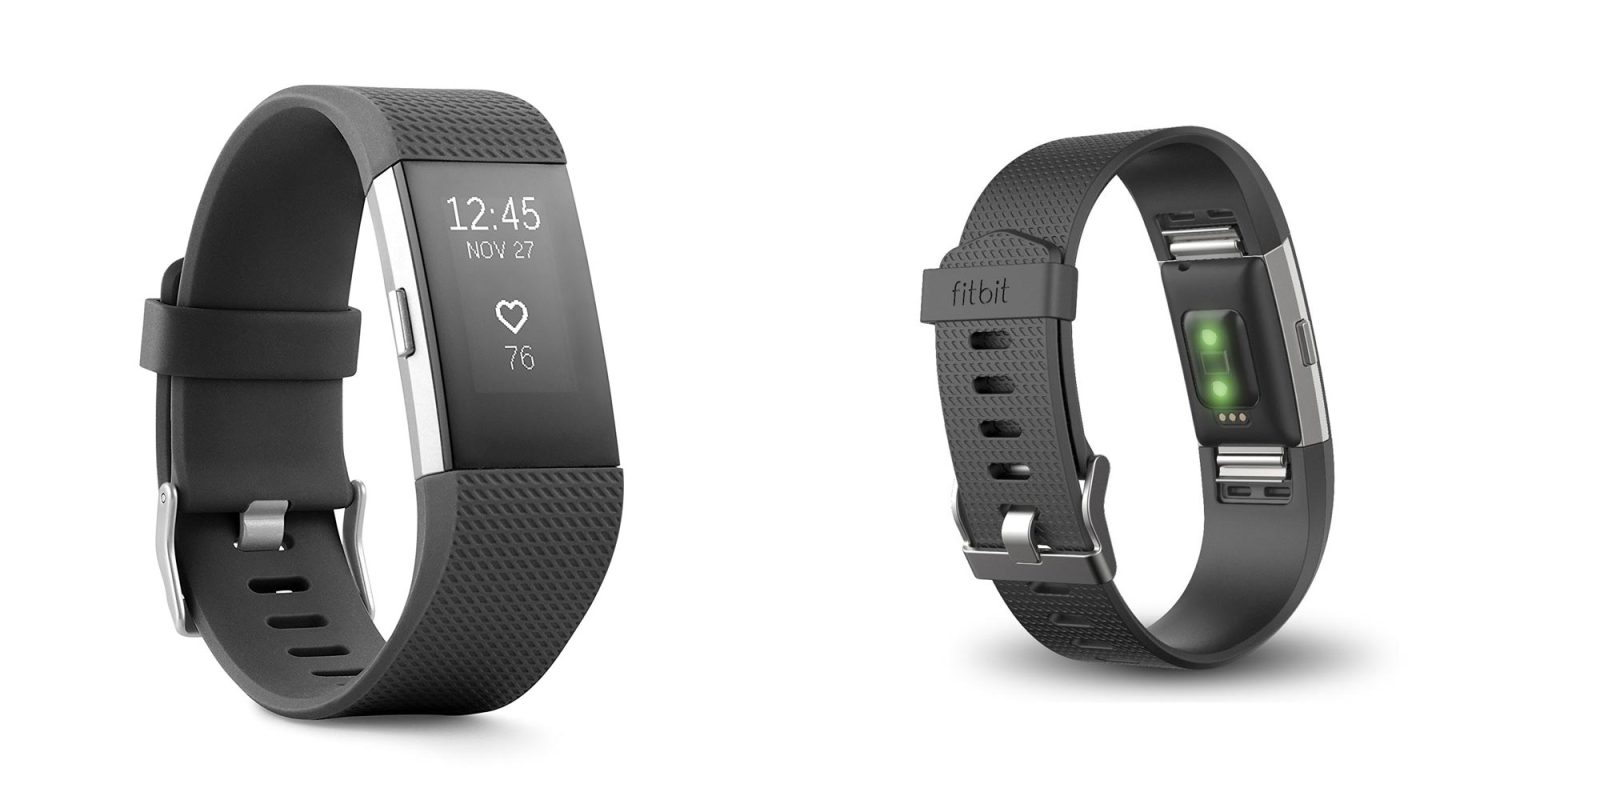 Fitbit Charge 2 sports five-day battery life & heart rate ...